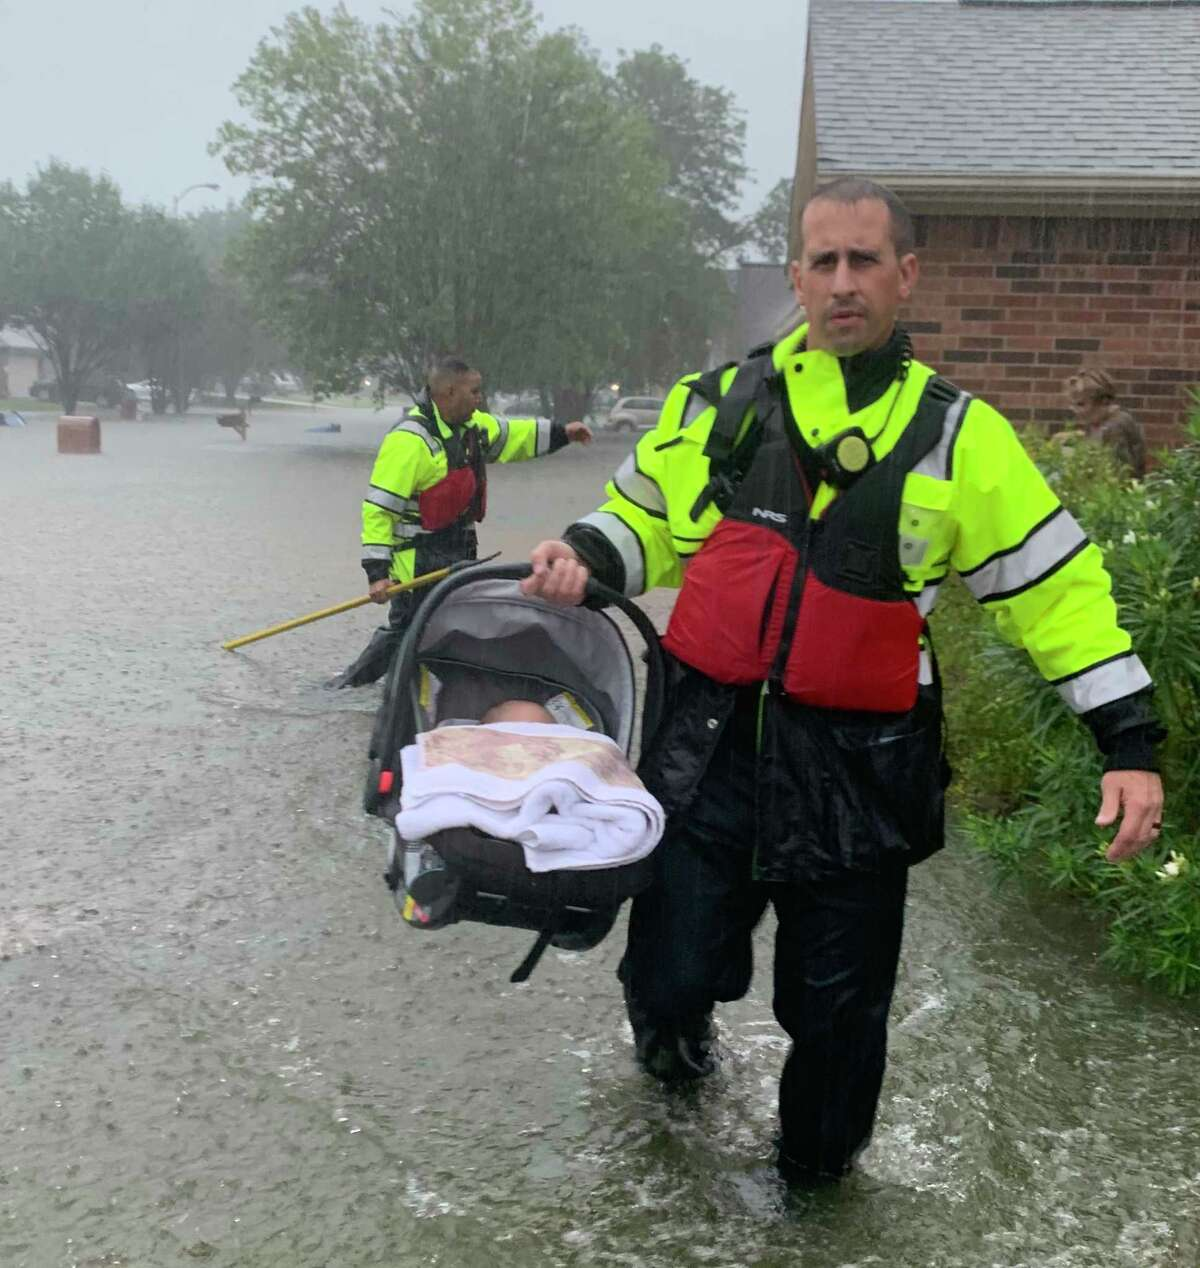 The Spring Fire Department conducts high-water rescues throughout the day on Thursday, Sept. 19, 2019.